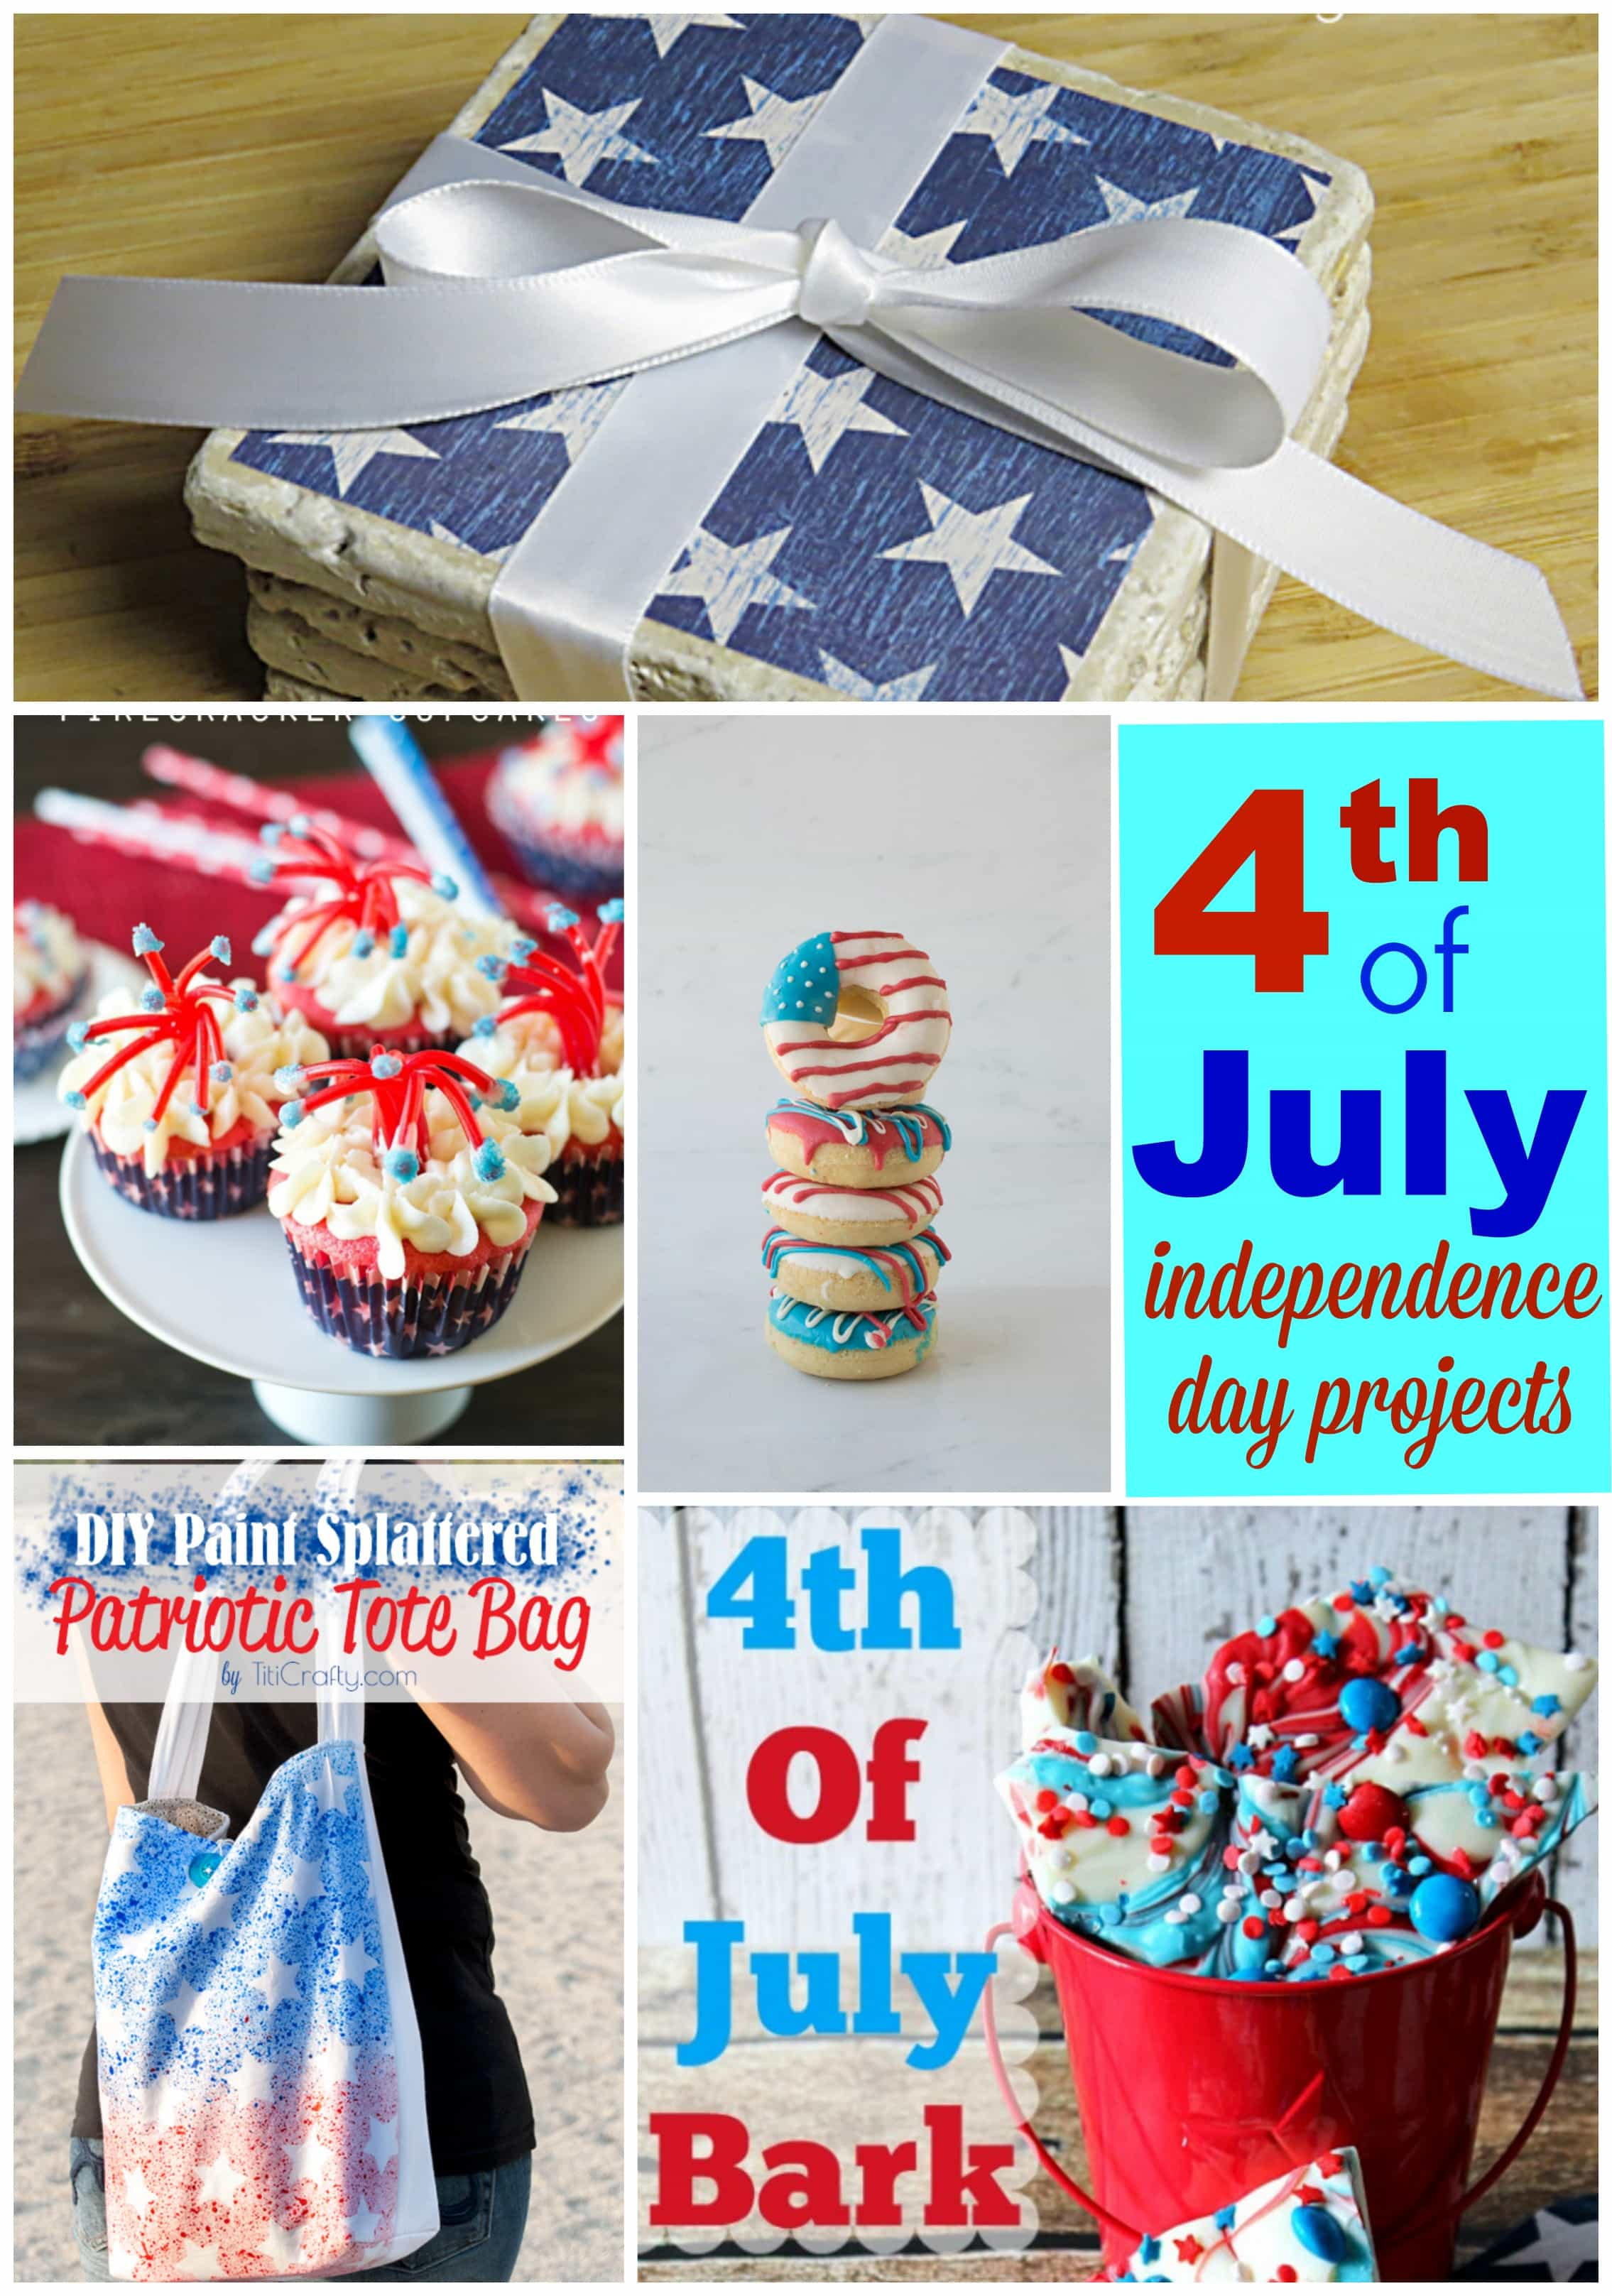 Some Amazing 4th of July Independence Day Ideas!